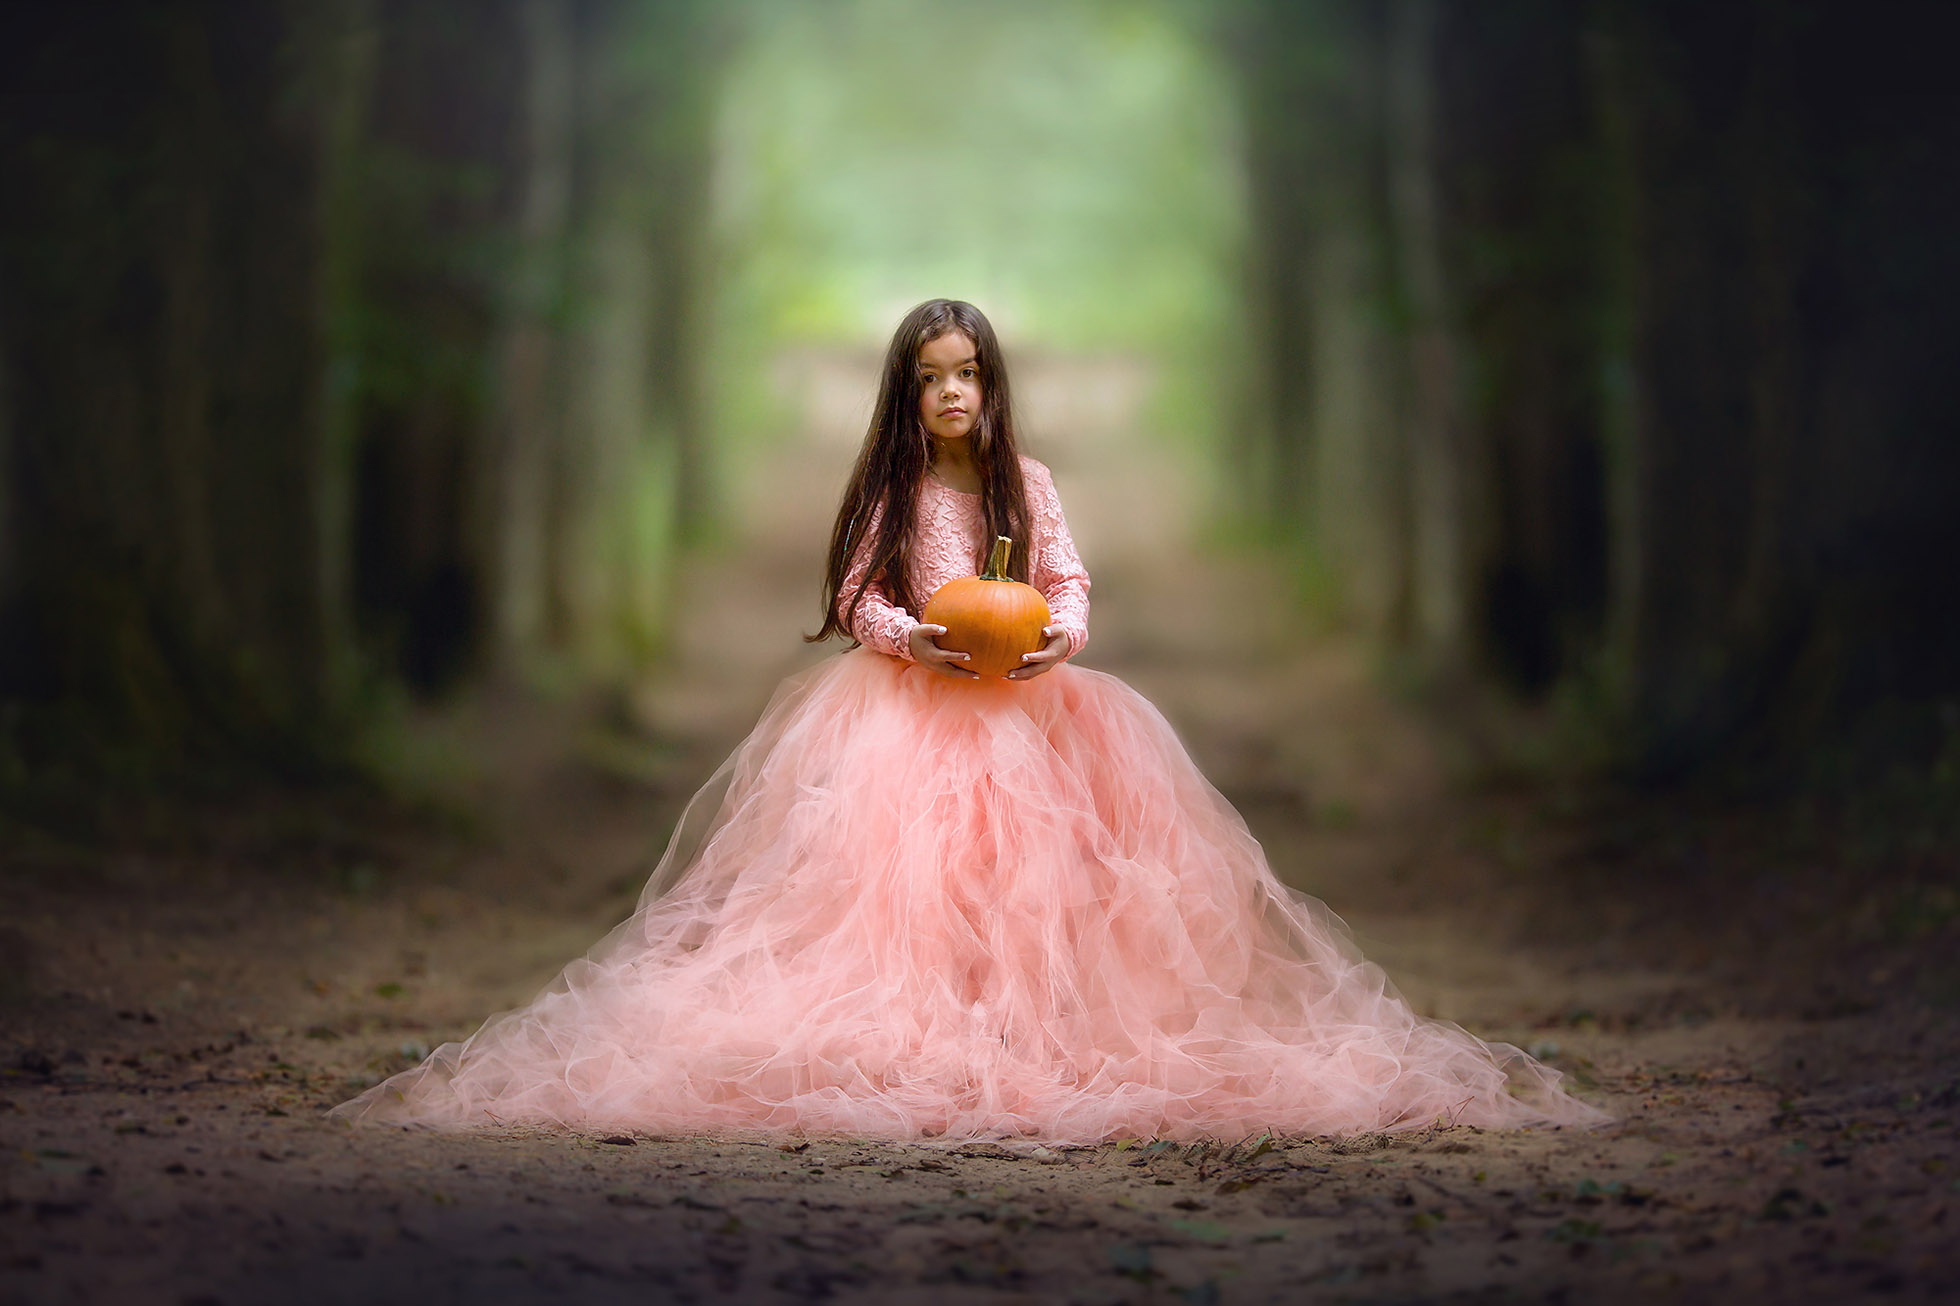 image of a little girl in a princess dress and a pumpkin by Willie Kers